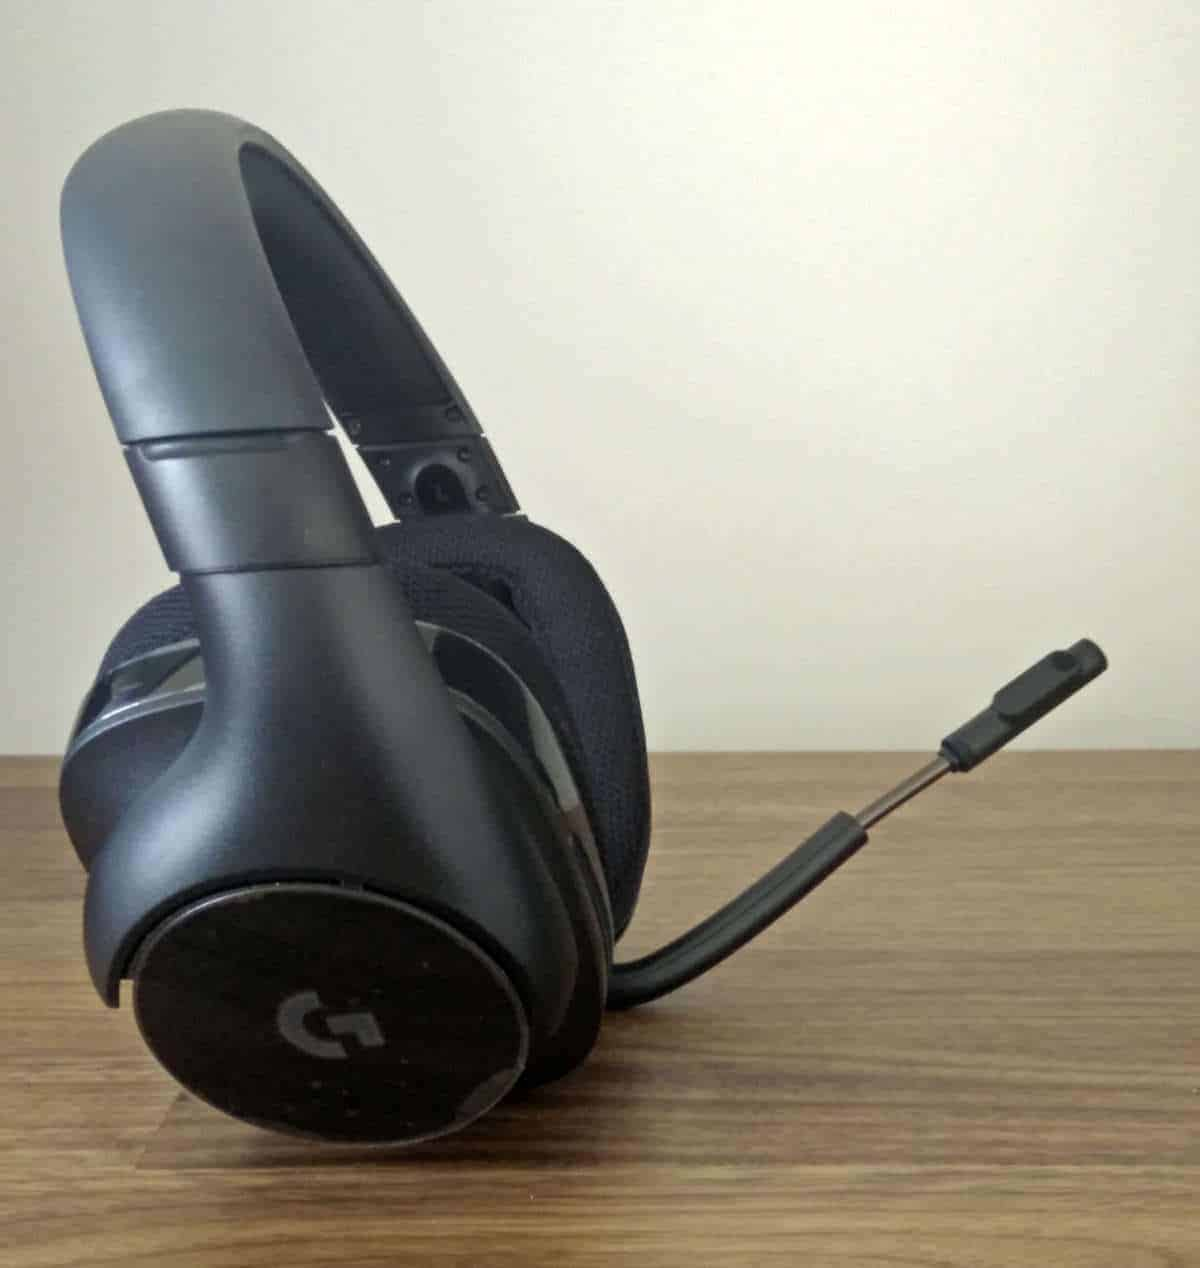 logitech usb headset h530 user manual